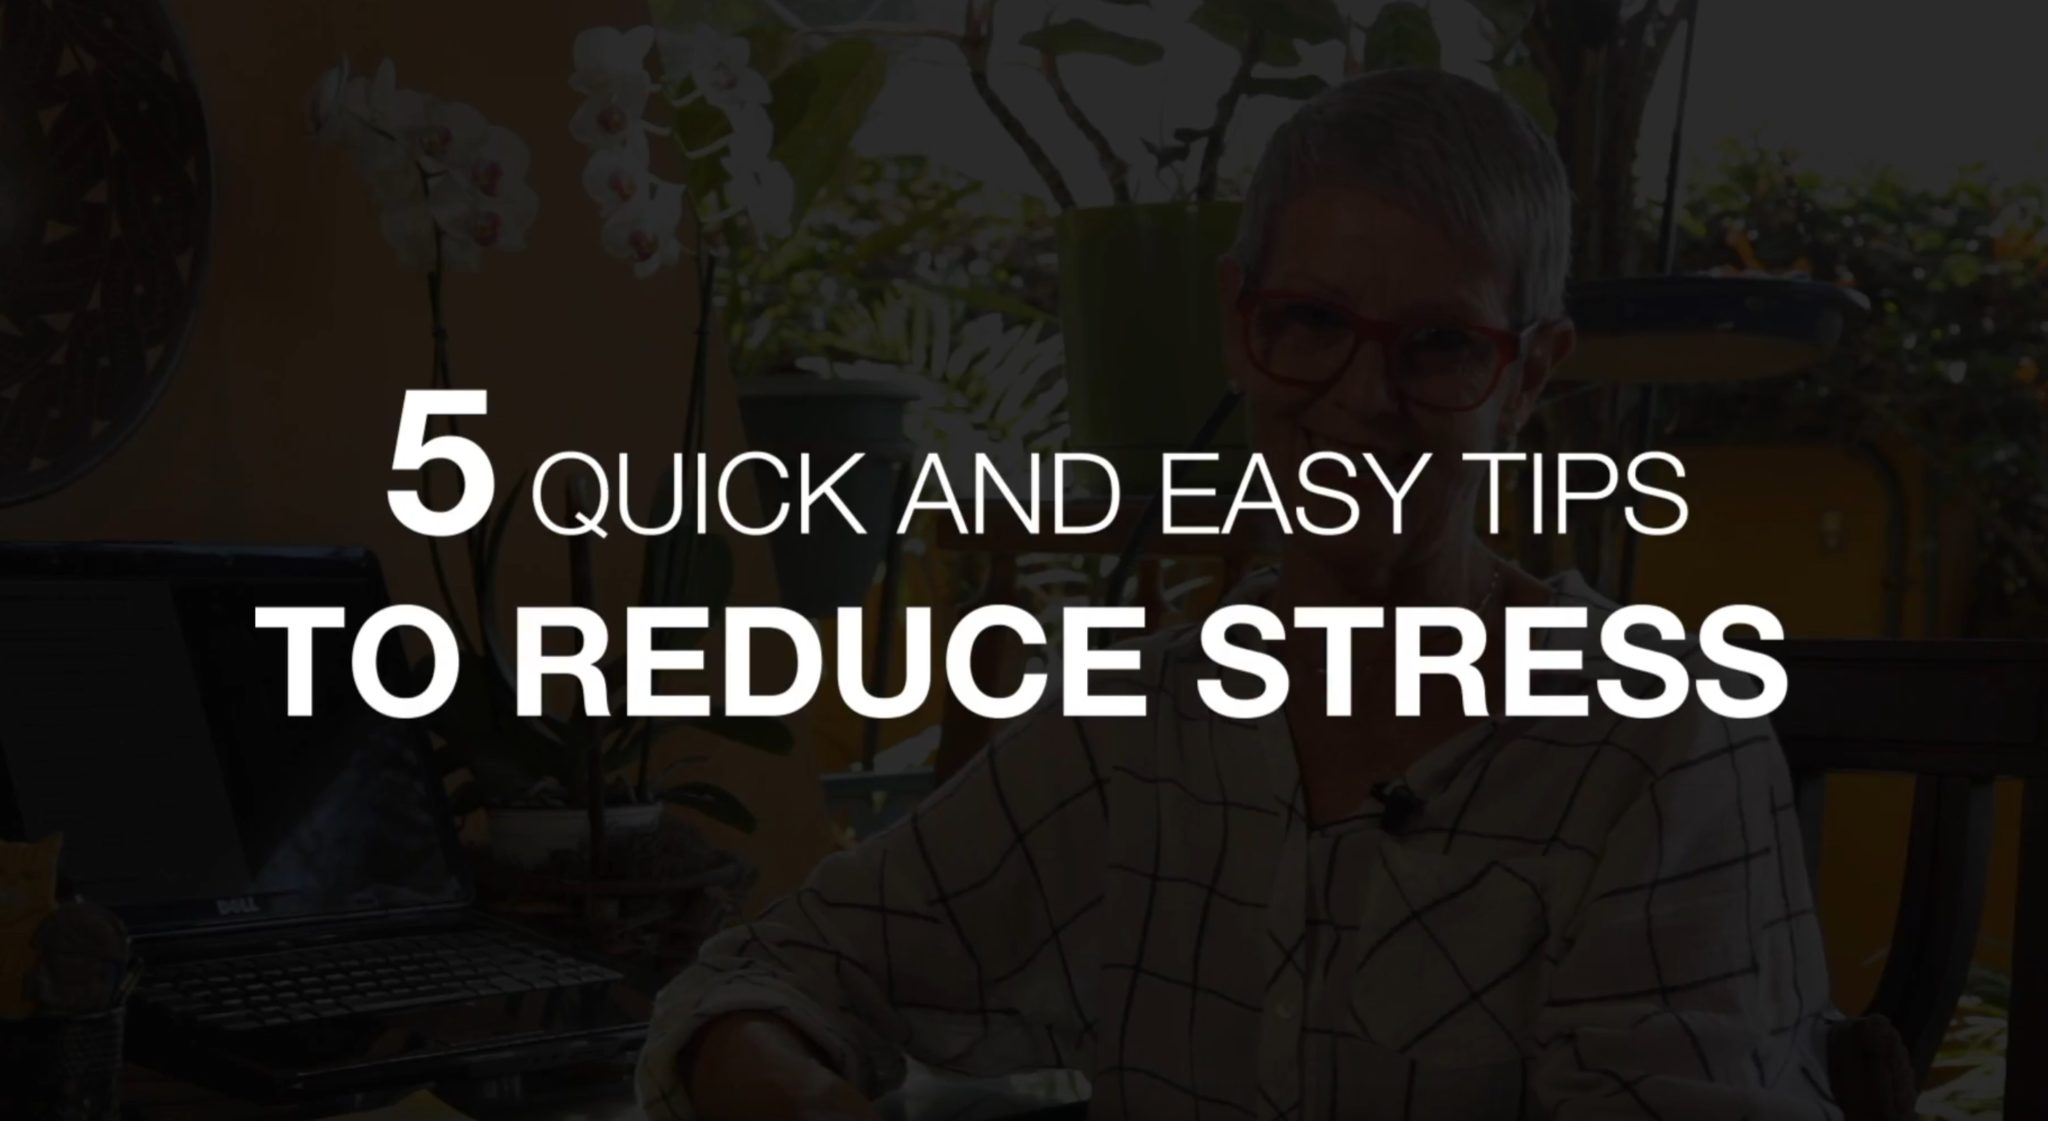 5 quick and easy ways to reduce stress